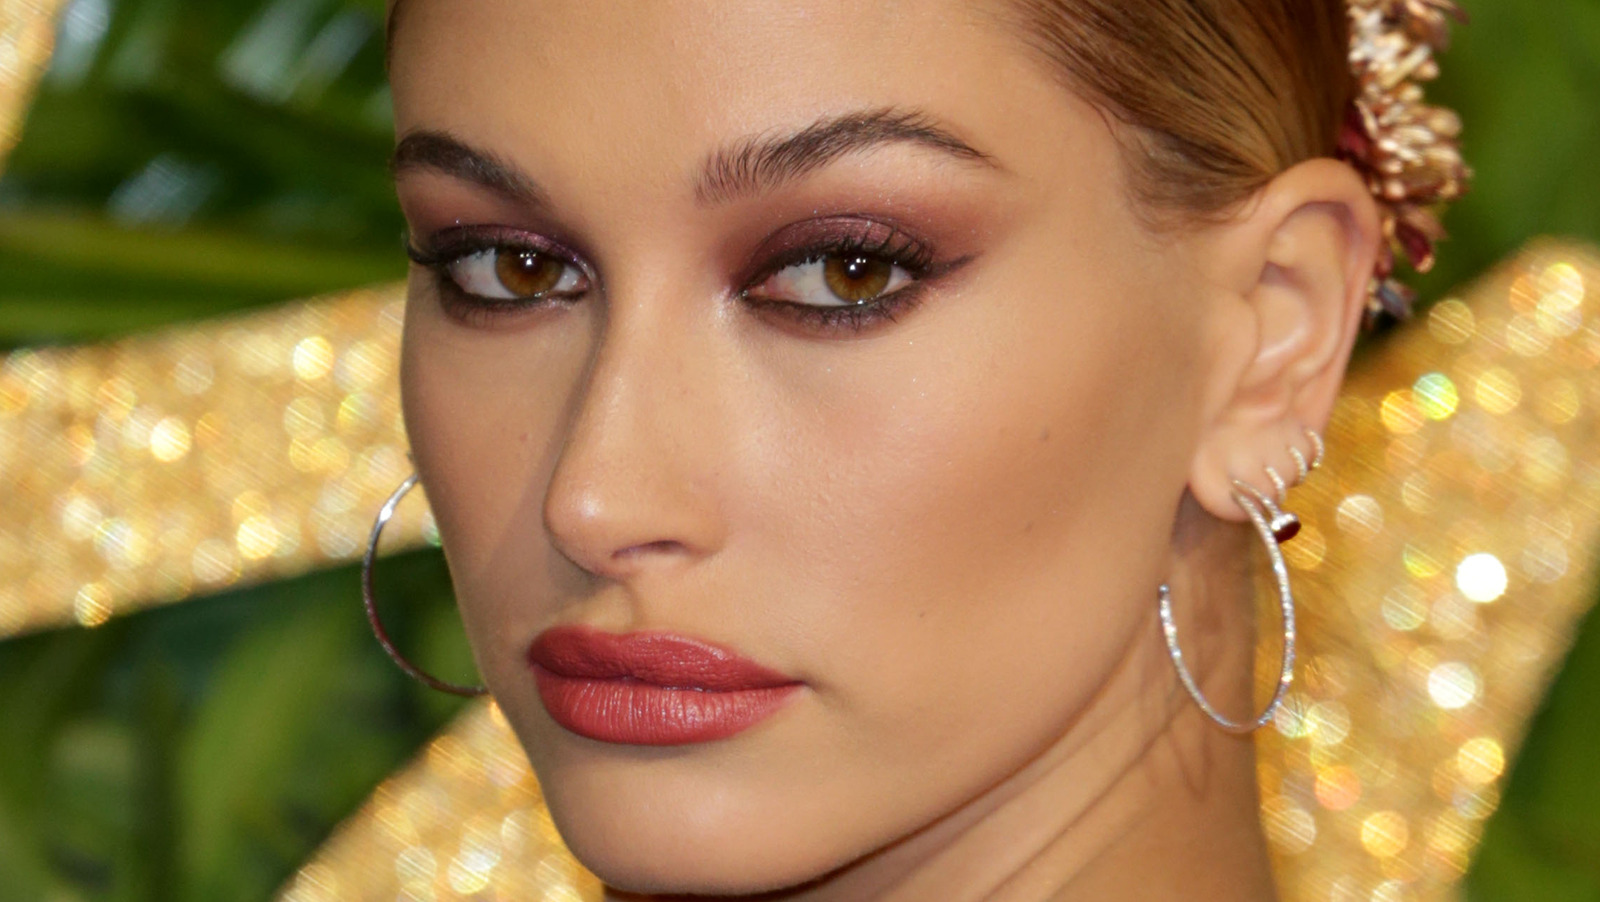 Why Hailey Bieber Distanced Herself From Her Family Name